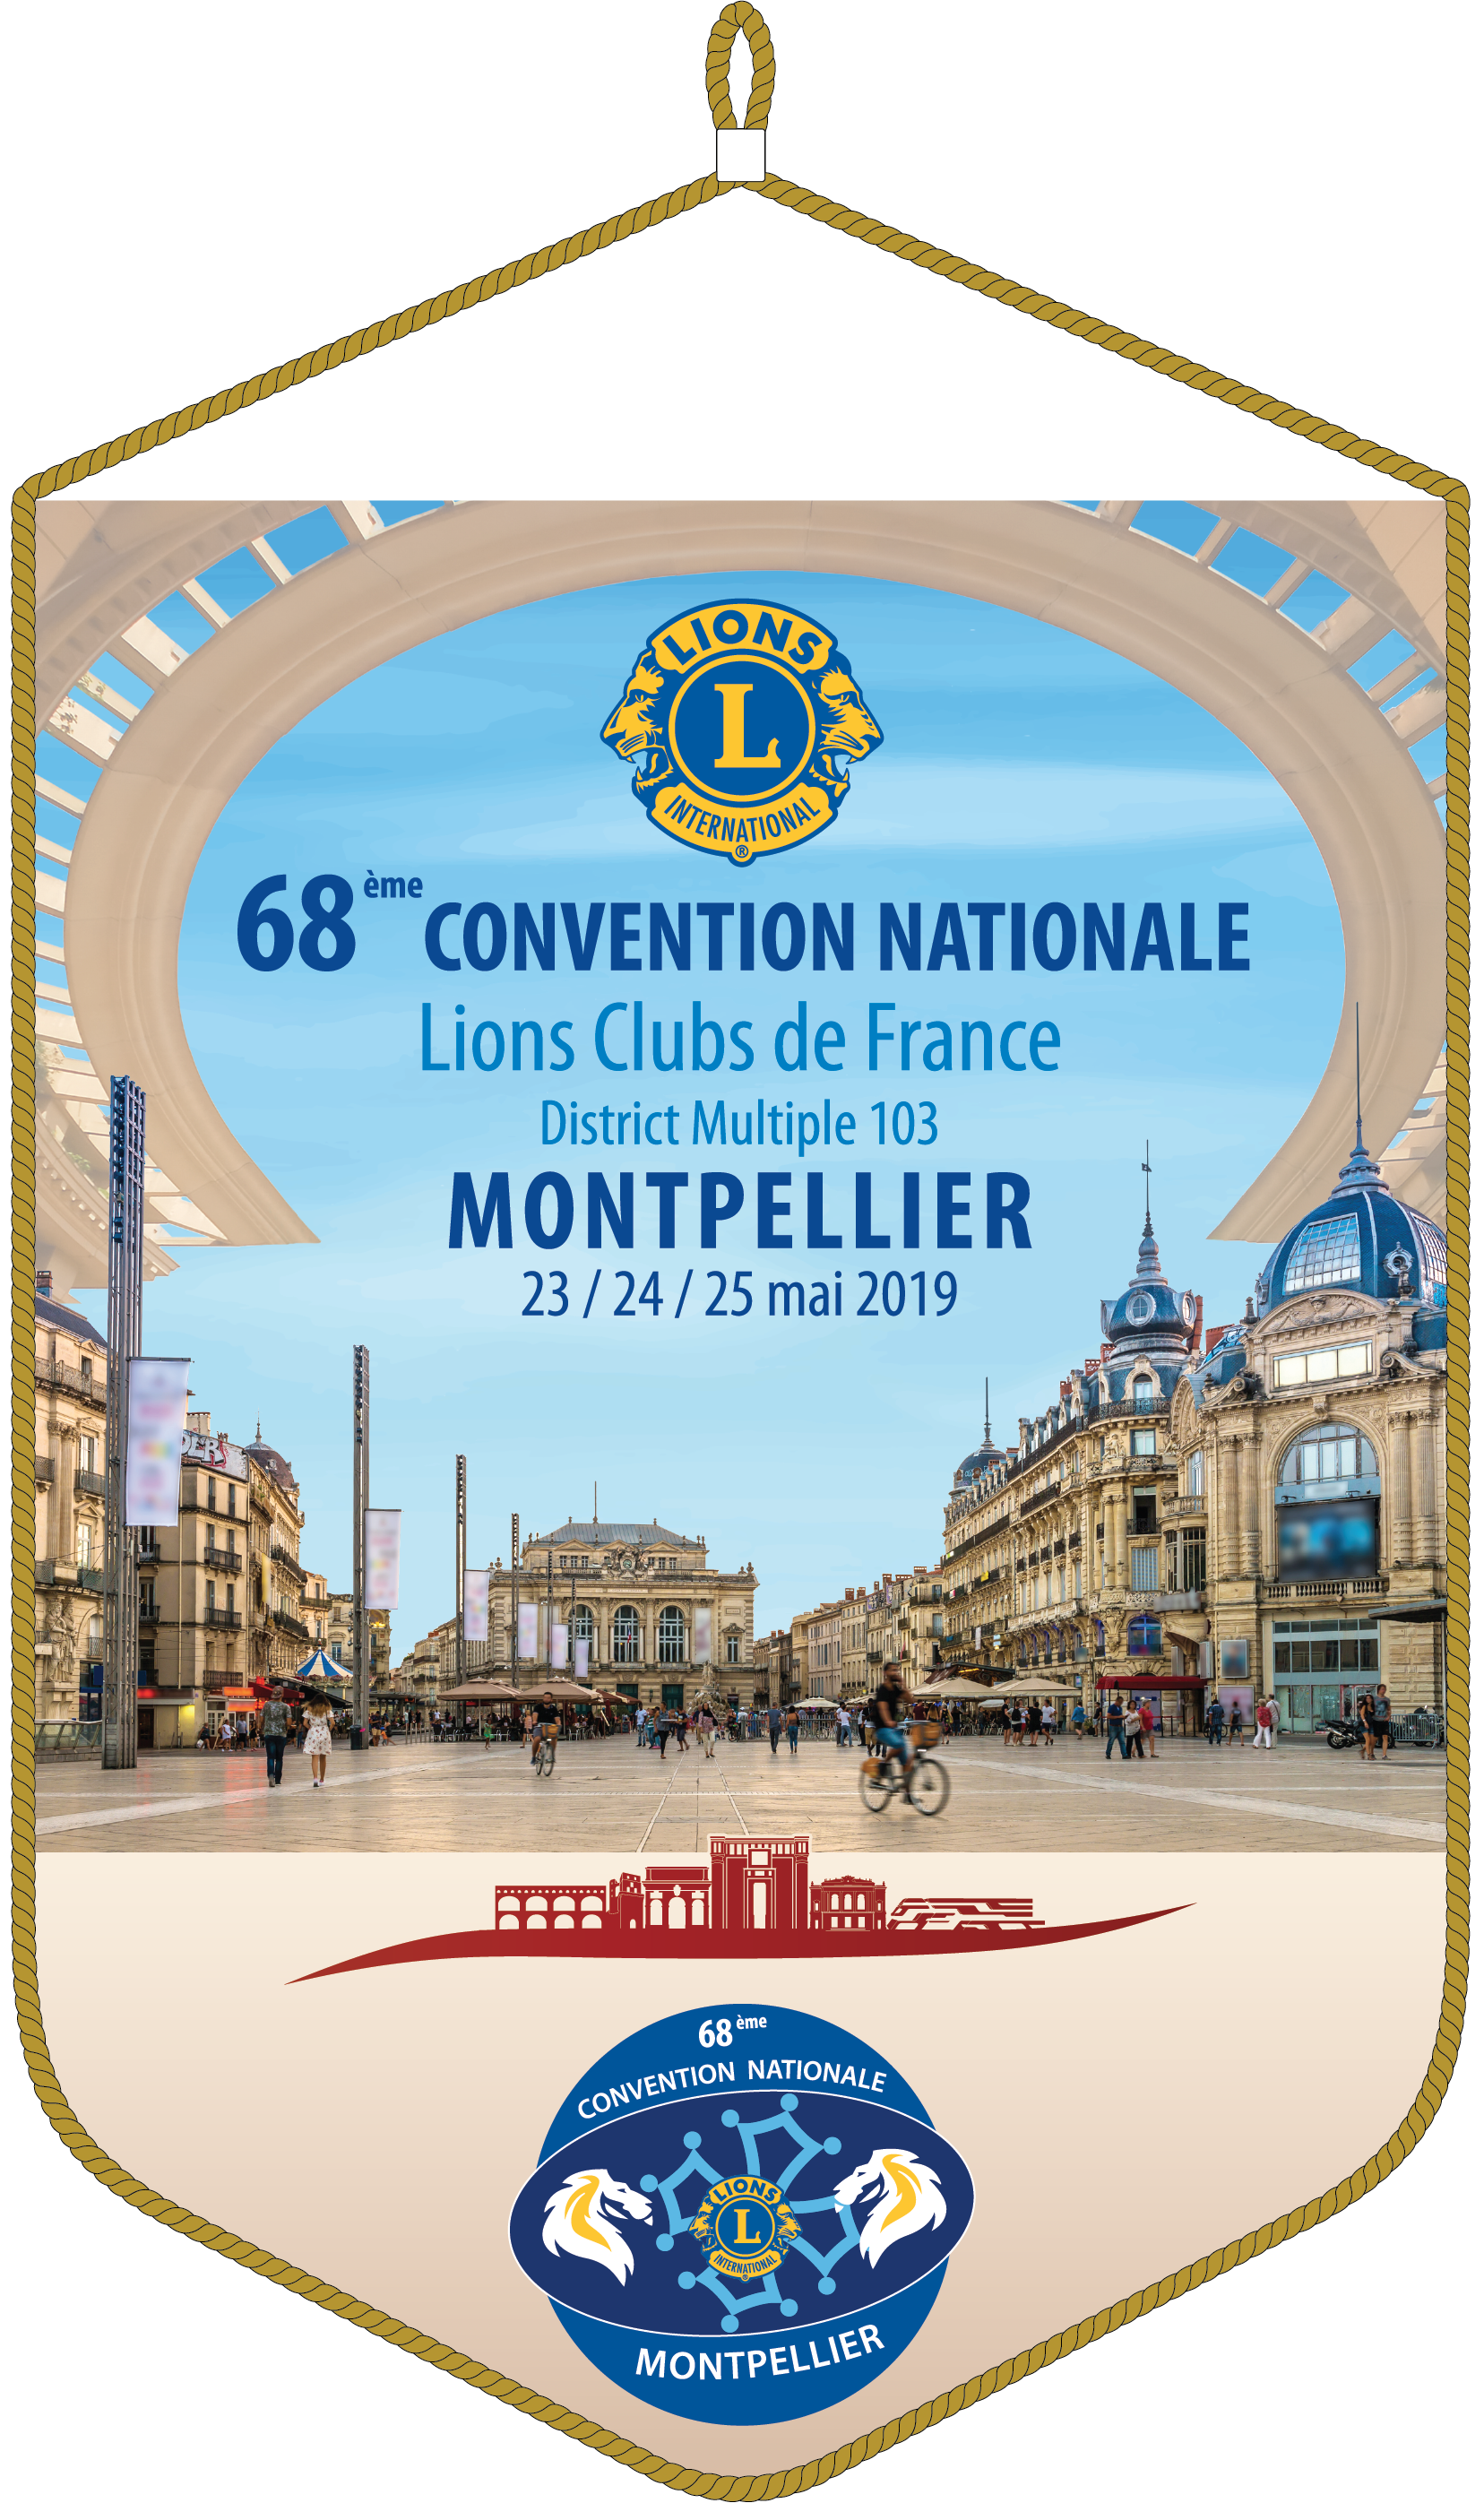 68e Convention nationale Lions 2019 - Montpellier